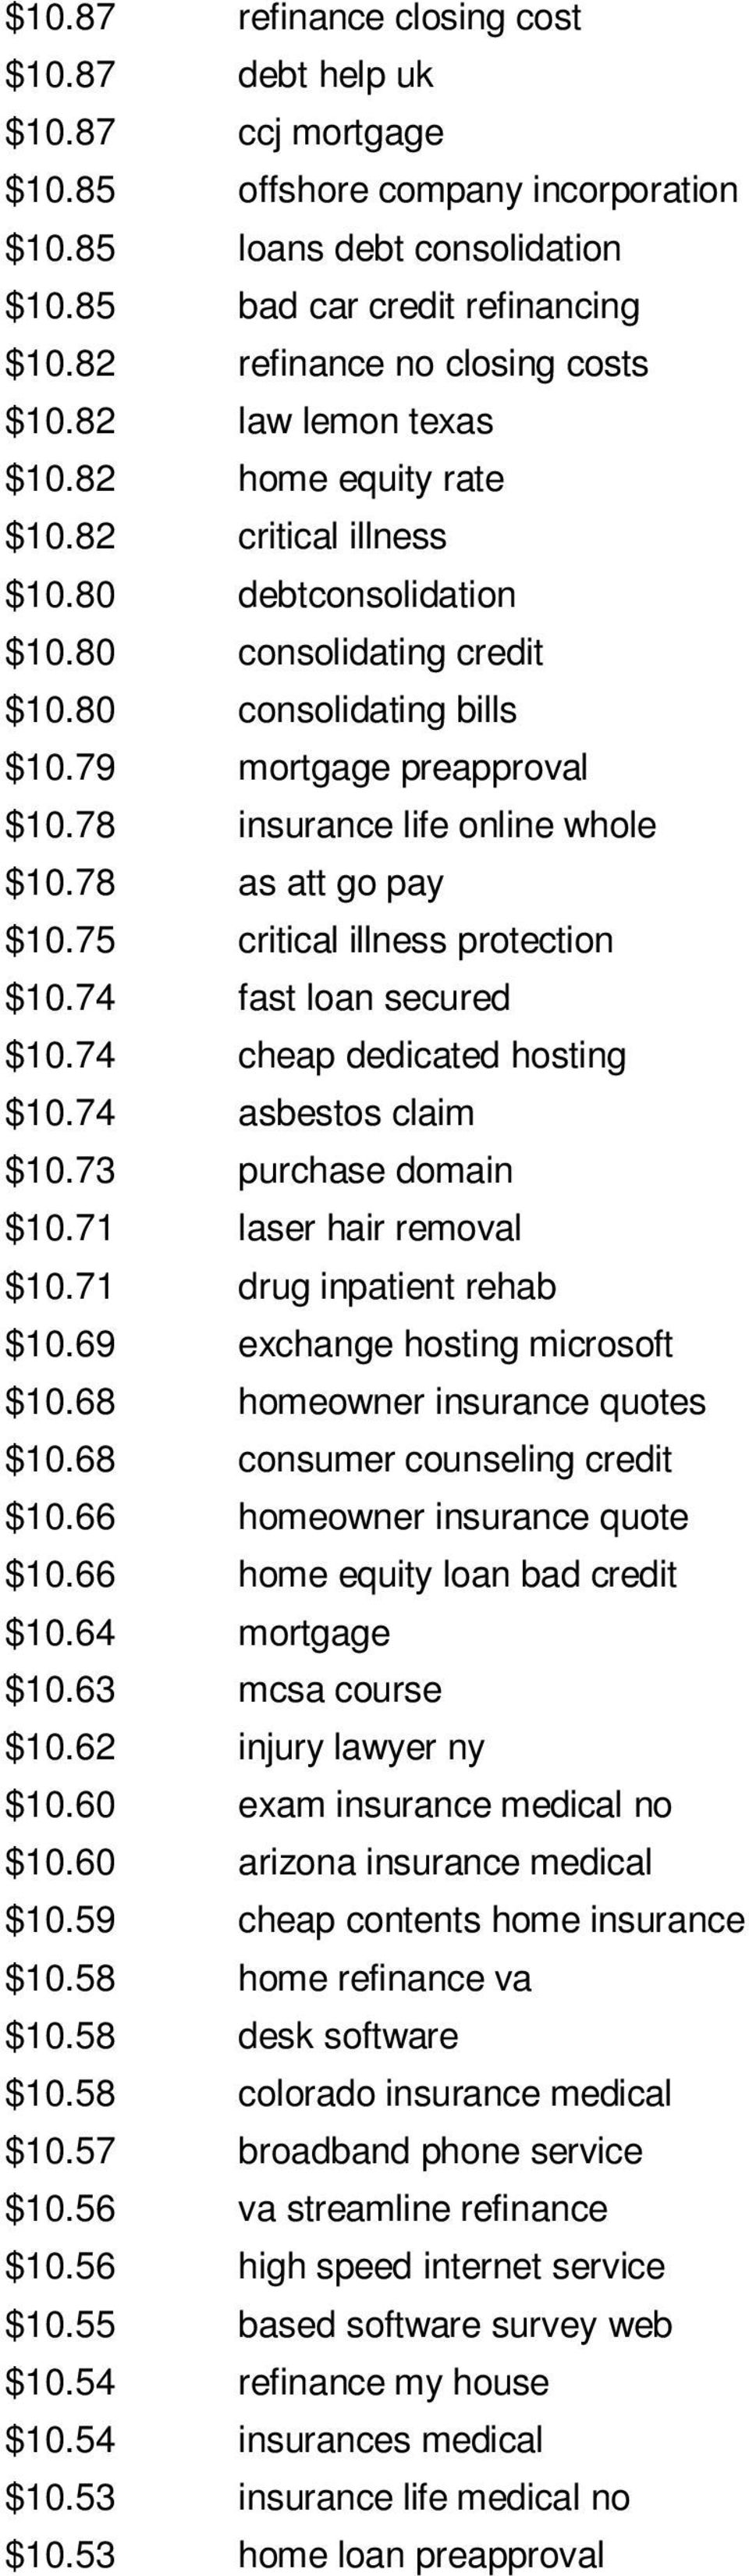 79 mortgage preapproval $10.78 insurance life online whole $10.78 as att go pay $10.75 critical illness protection $10.74 fast loan secured $10.74 cheap dedicated hosting $10.74 asbestos claim $10.